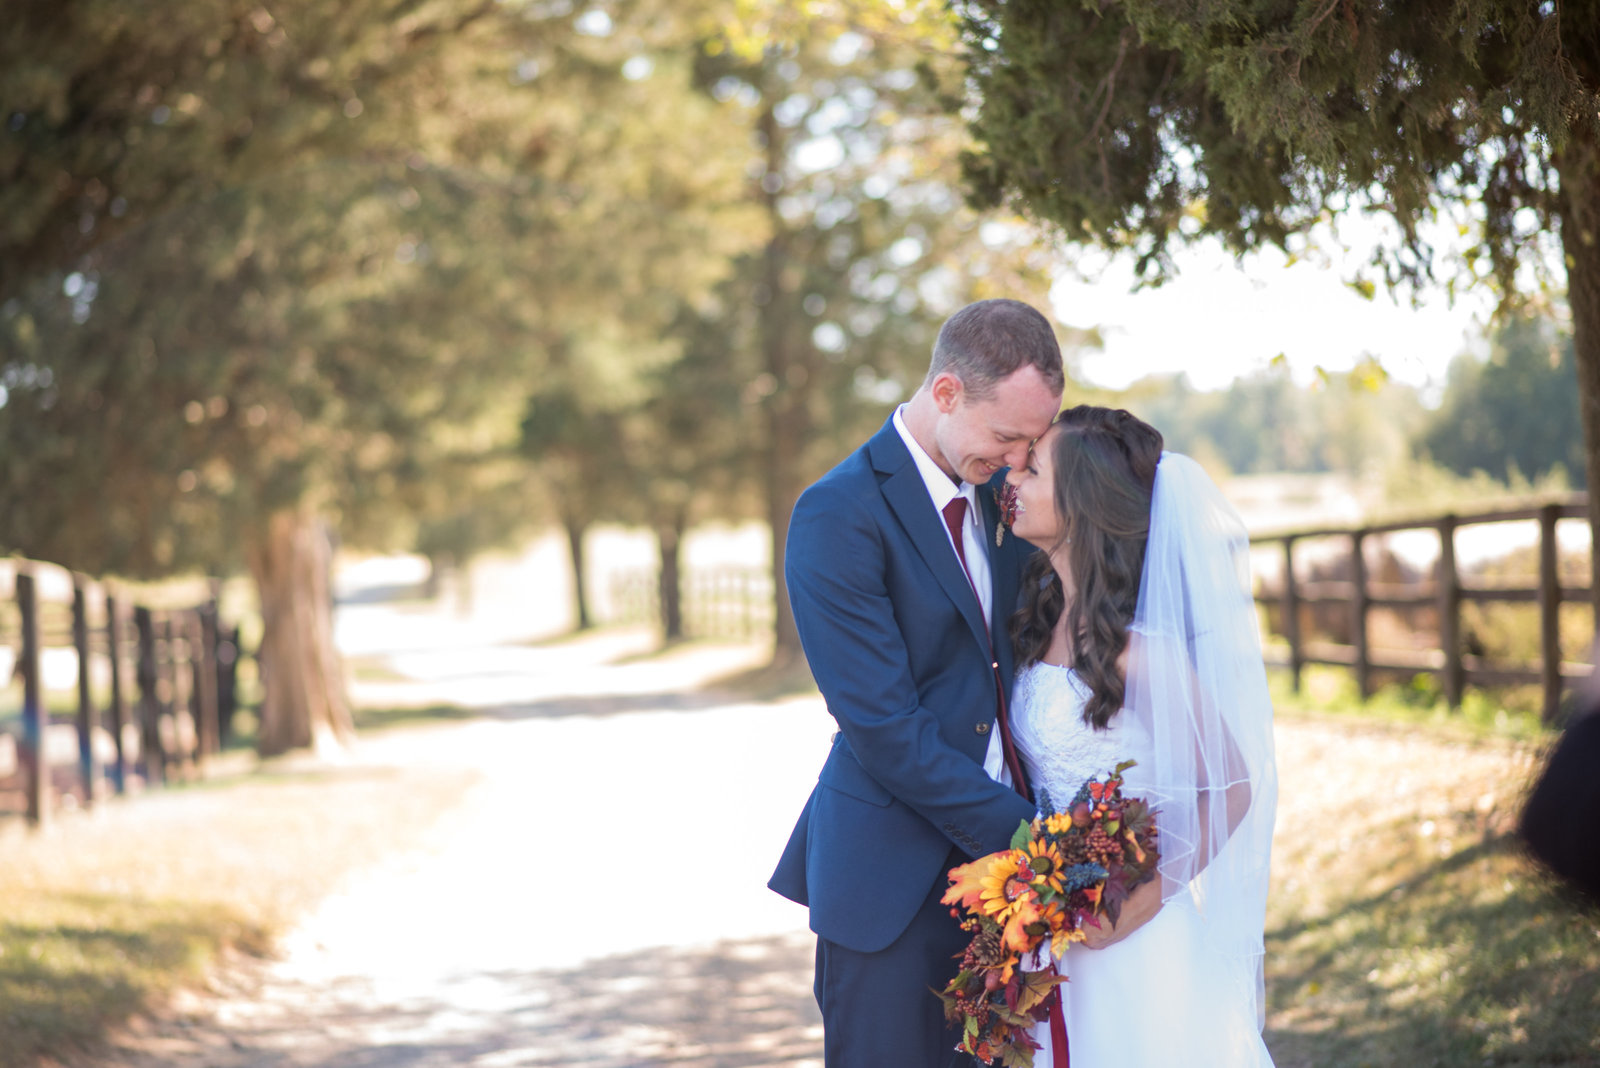 Angie+Jesse-Wolftrap-Farm-Wedding-VA-MermaidlakePhotography-638-41